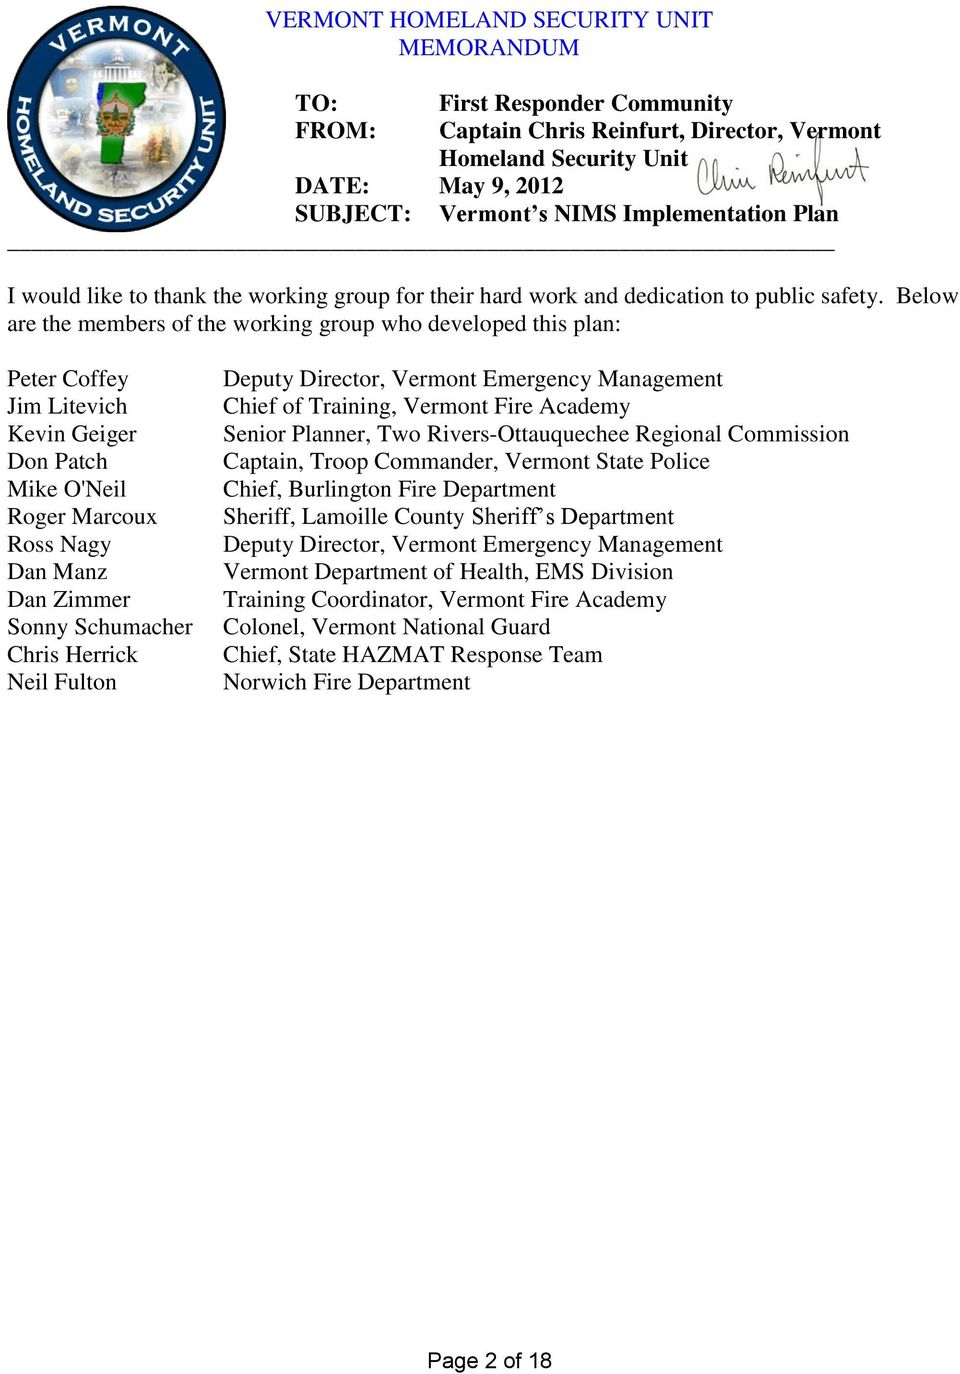 Below are the members of the working group who developed this plan: Peter Coffey Jim Litevich Kevin Geiger Don Patch Mike O'Neil Roger Marcoux Ross Nagy Dan Manz Dan Zimmer Sonny Schumacher Chris